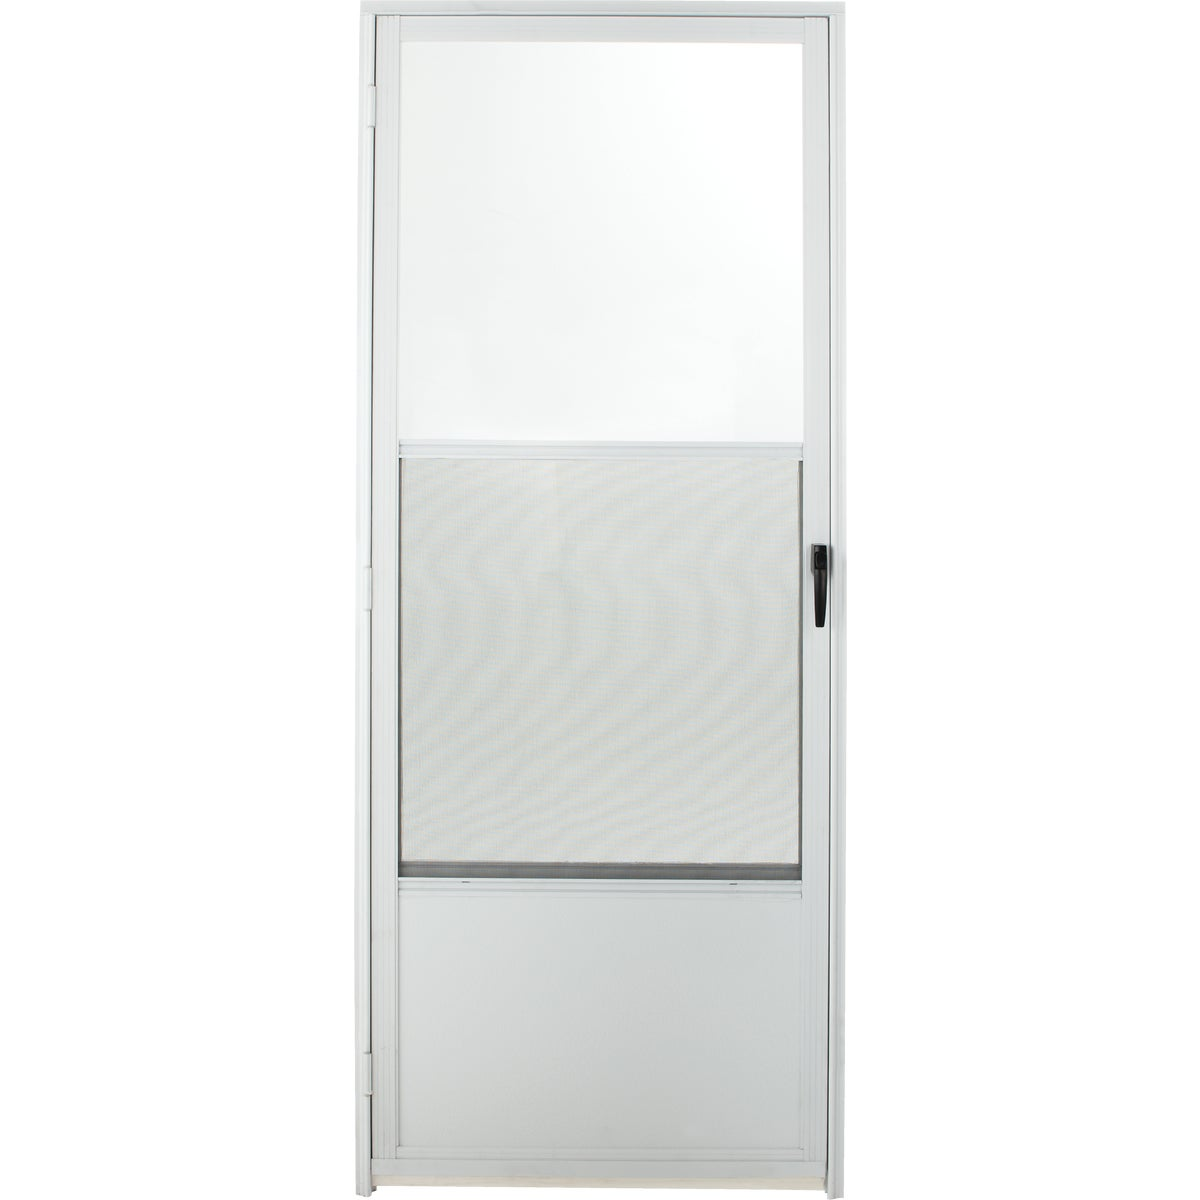 163 2868 LH WHT DOOR - F05784 by Croft Llc